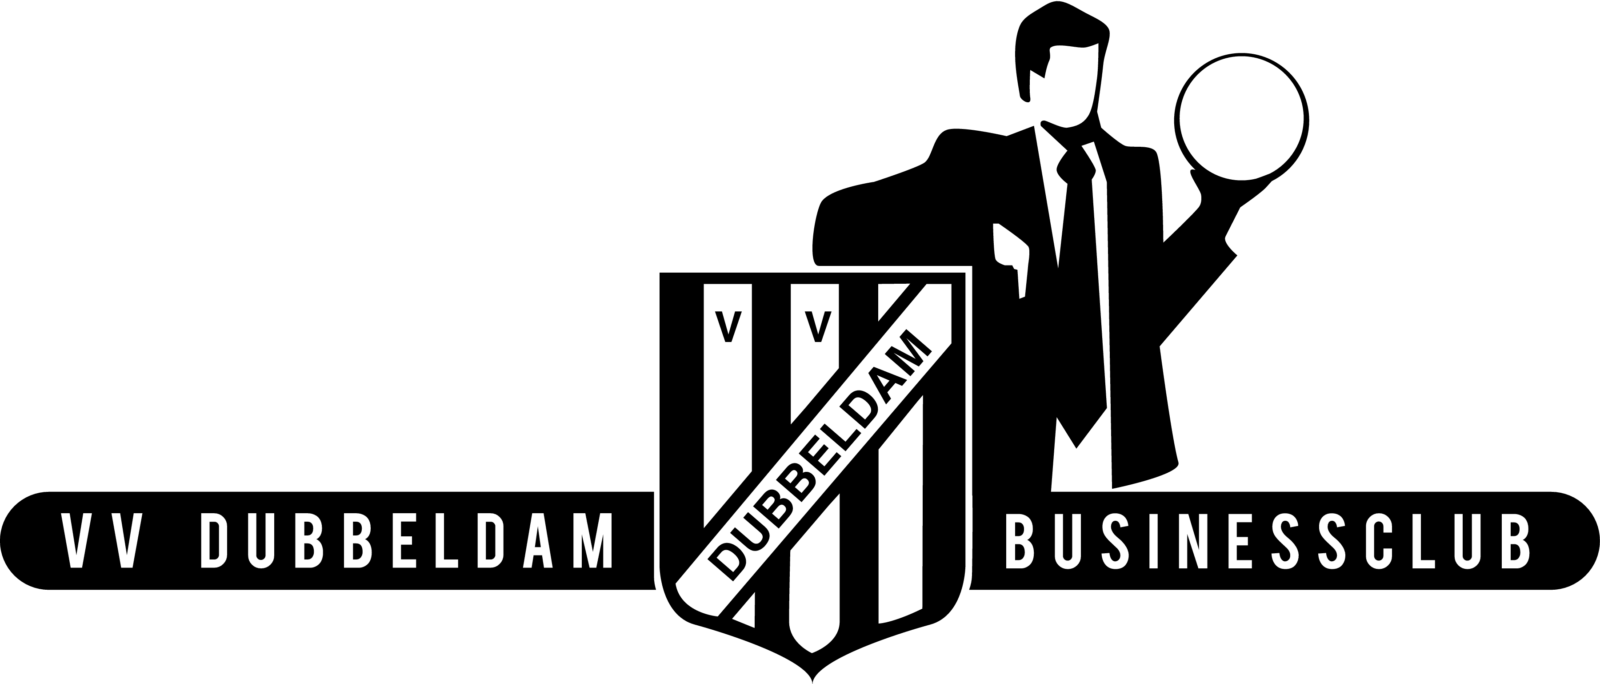 Businessclub VV Dubbeldam